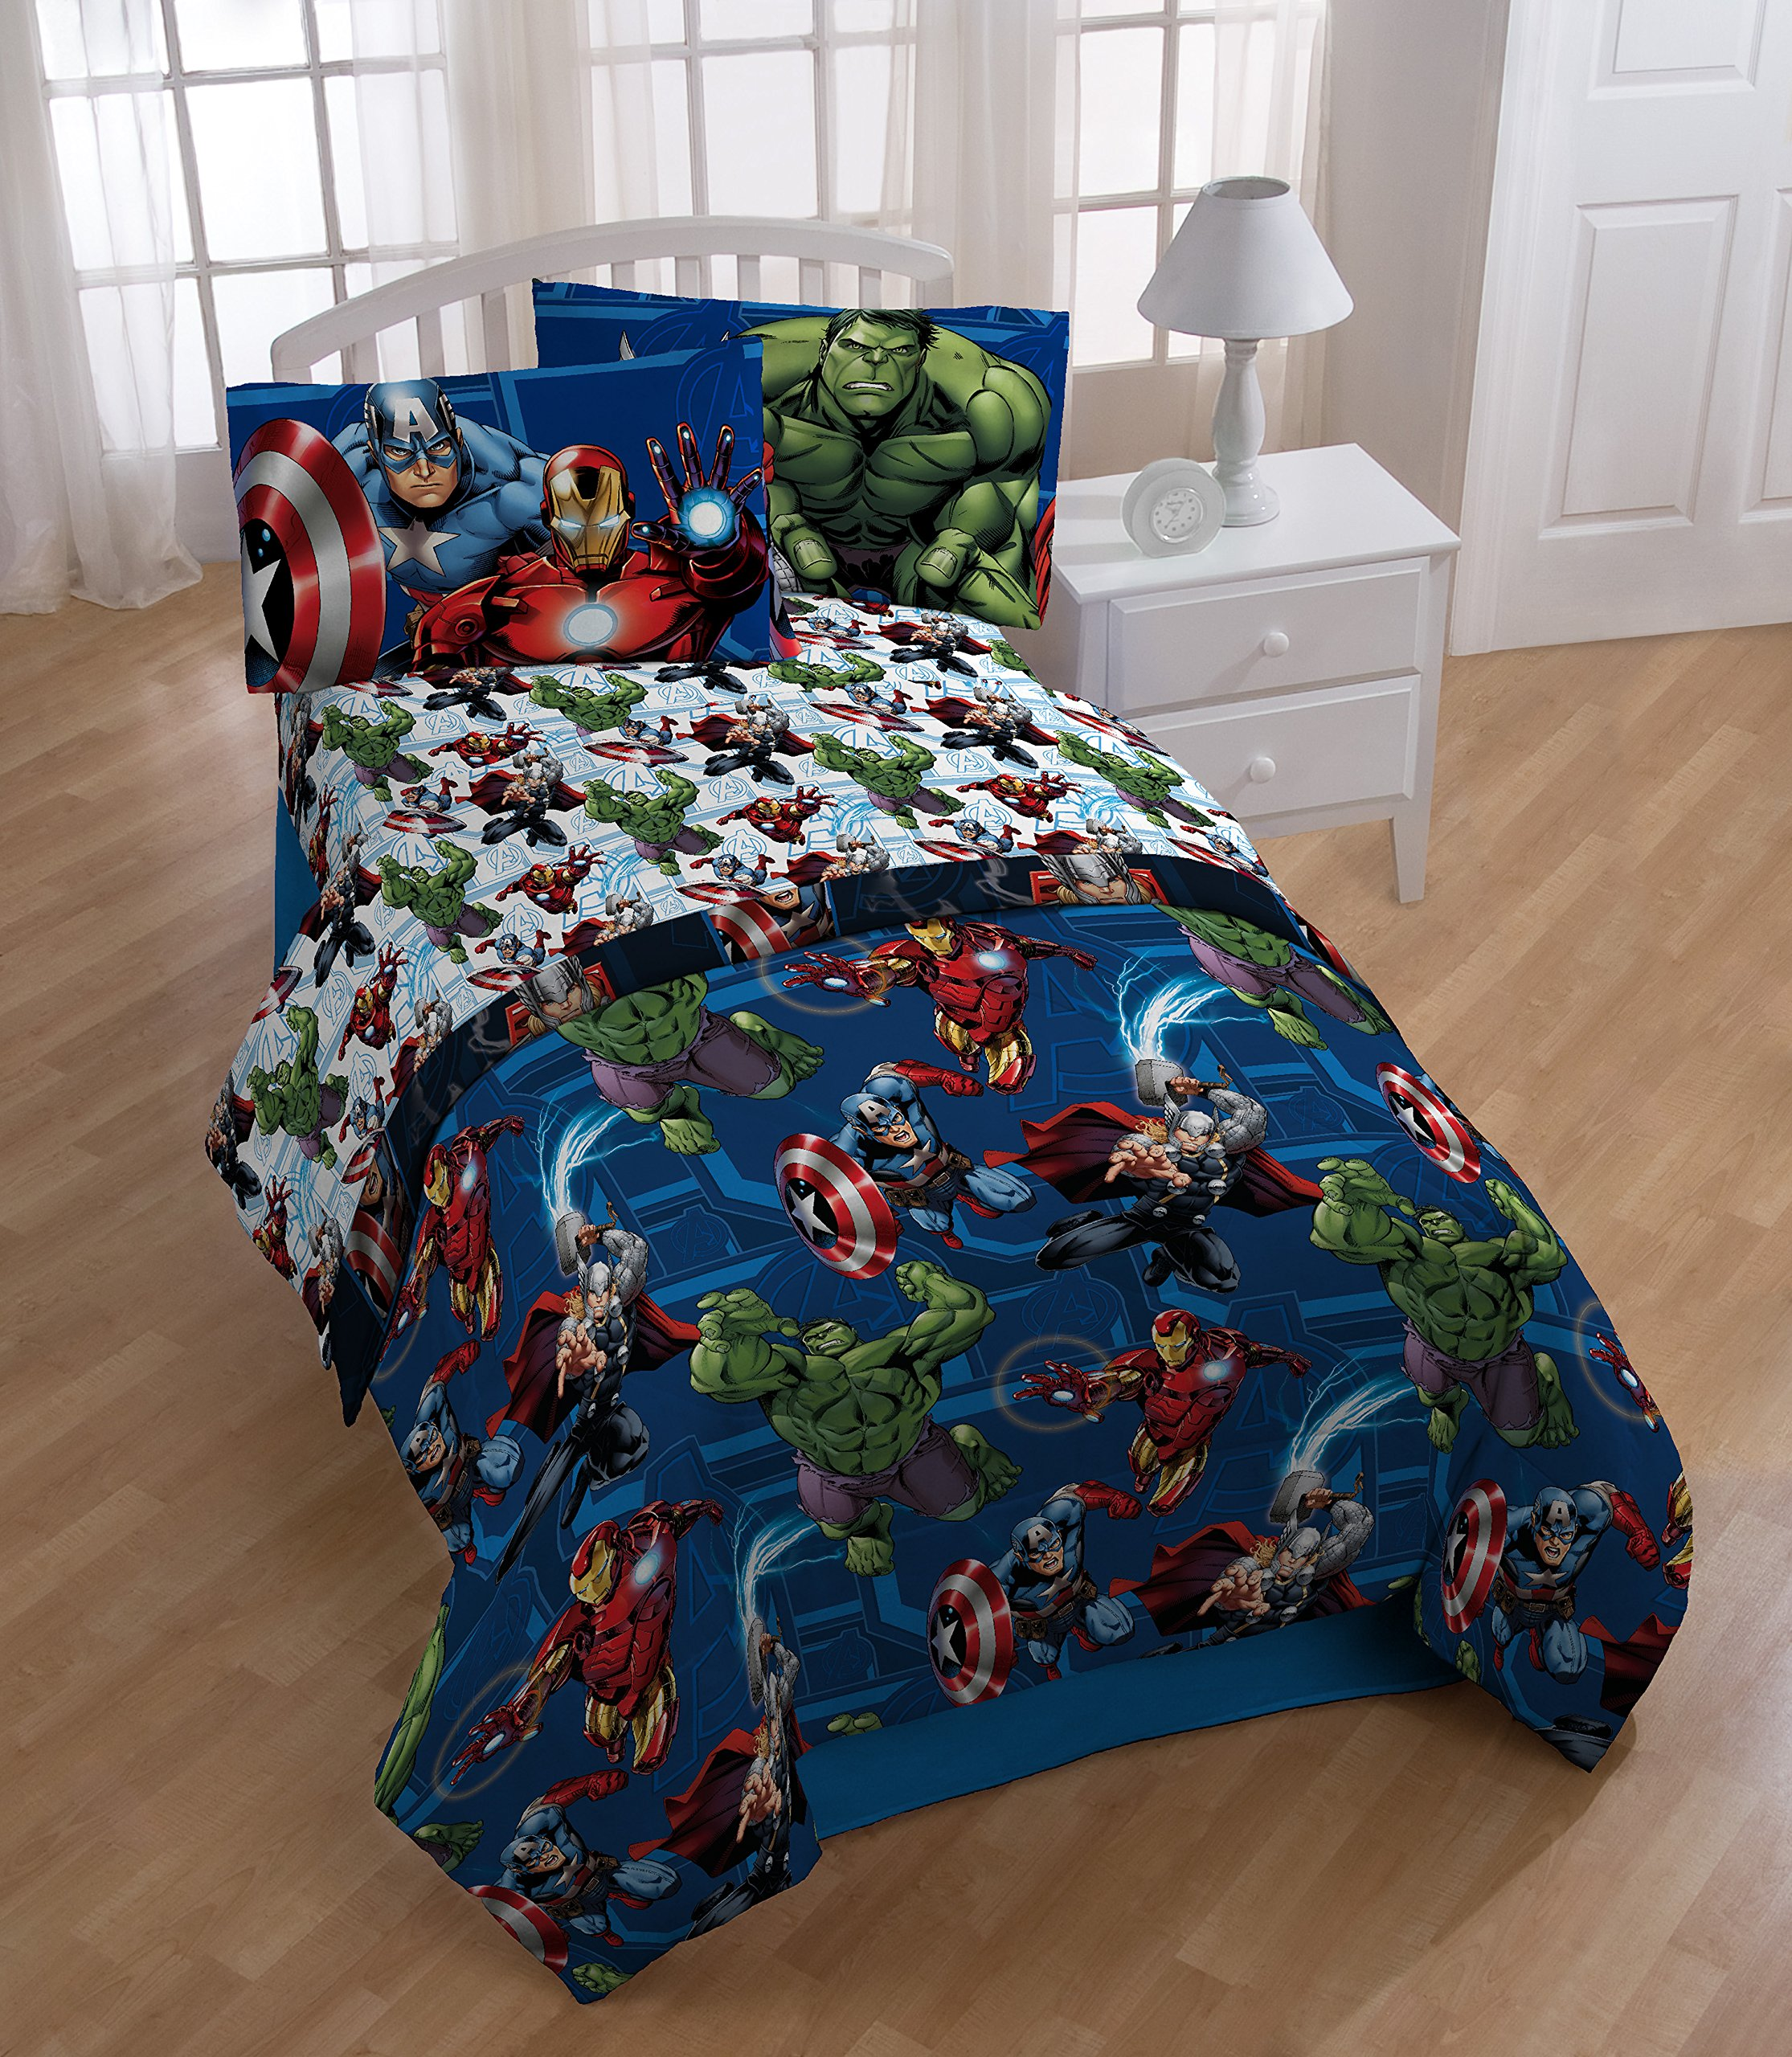 Marvel Avengers Heroic Age Blue/White 3 Piece Twin Sheet Set with Captain America, Thor, Ironman & Hulk by Marvel (Image #2)